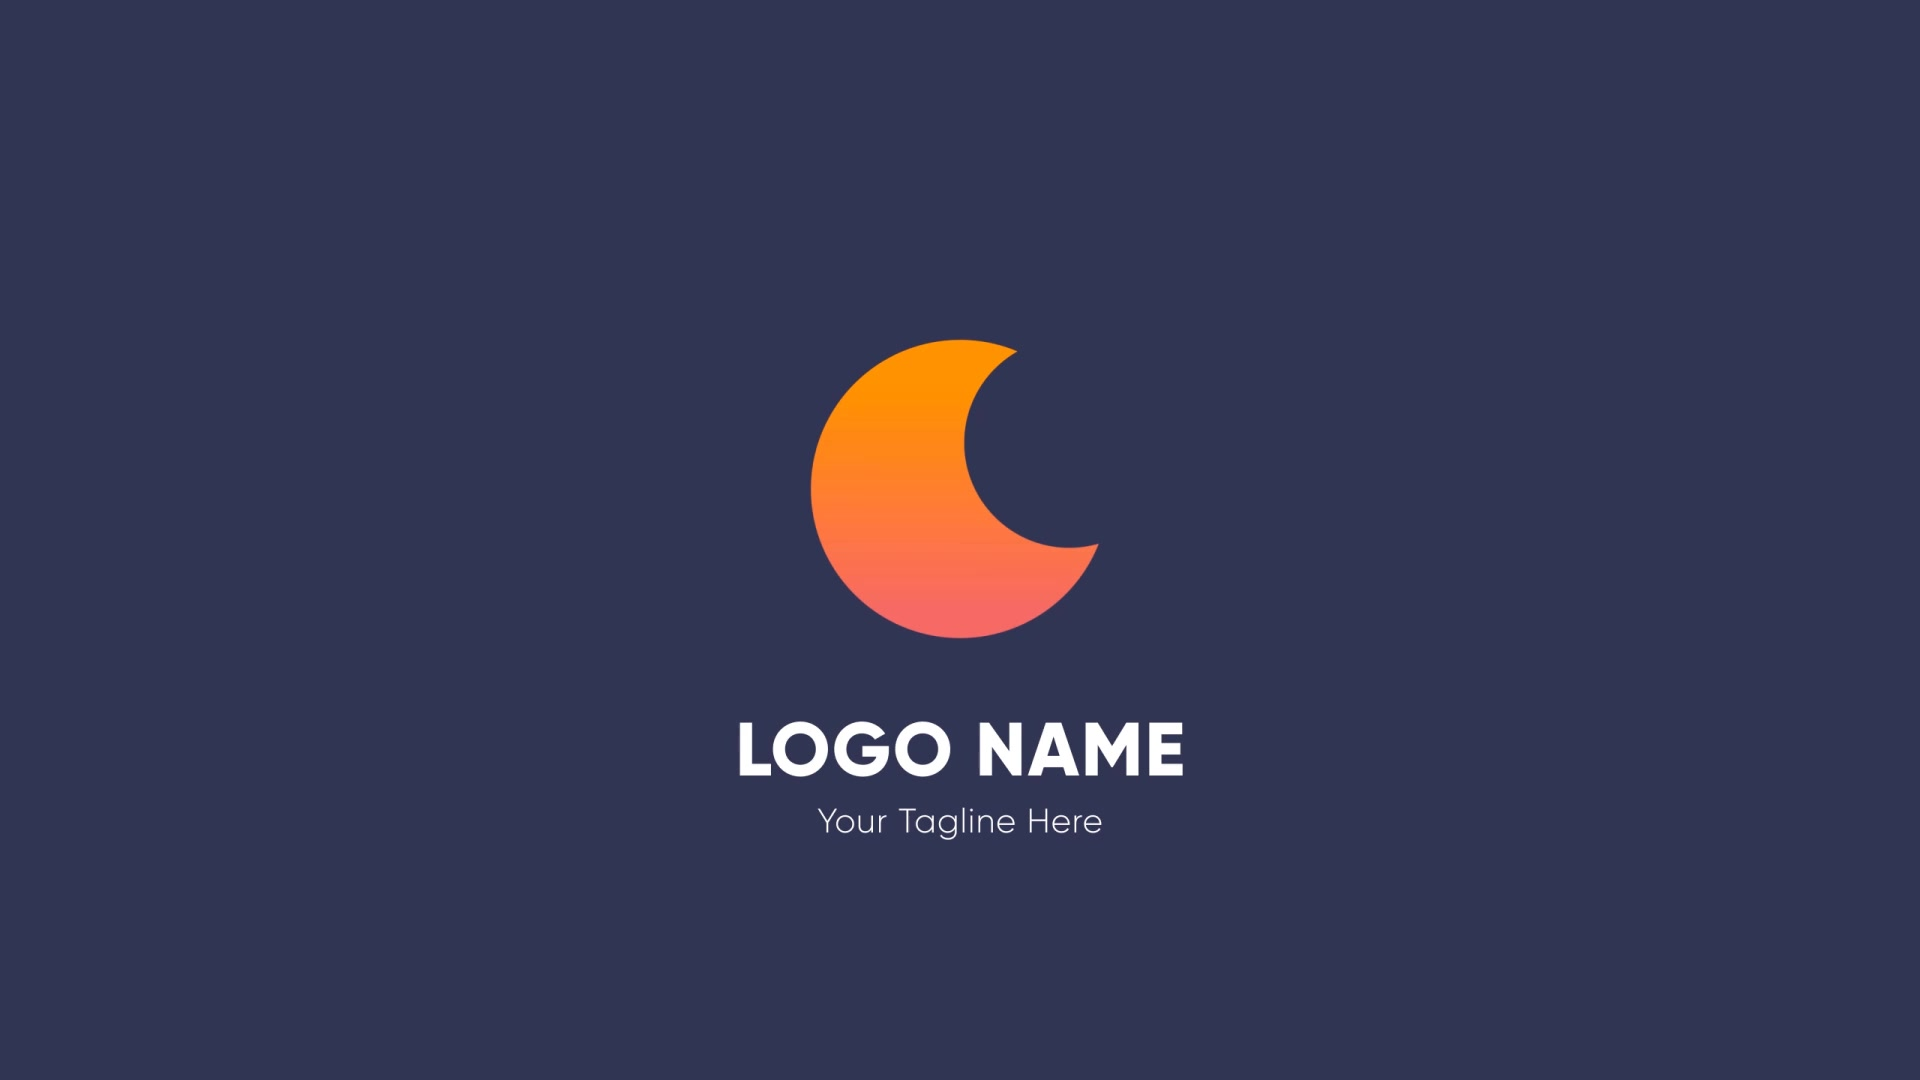 Minimal Shape Logo Videohive 26434864 After Effects Image 3